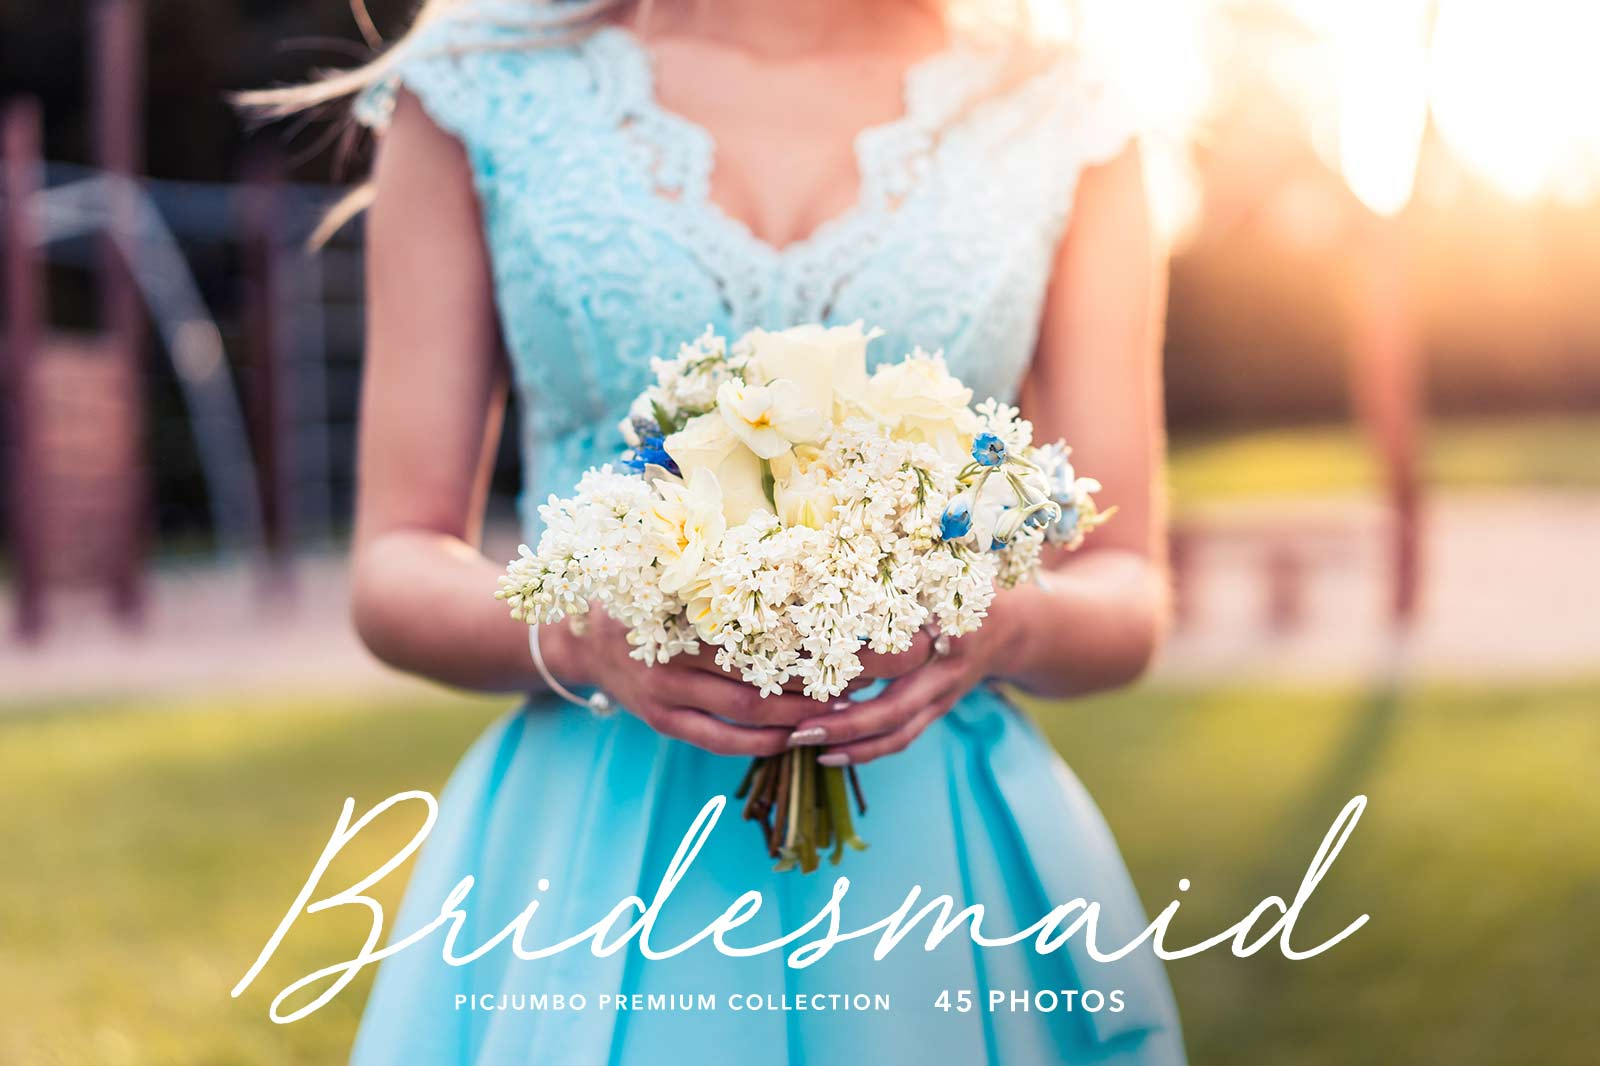 Bridesmaid — Join PREMIUM and get instant access to this collection!